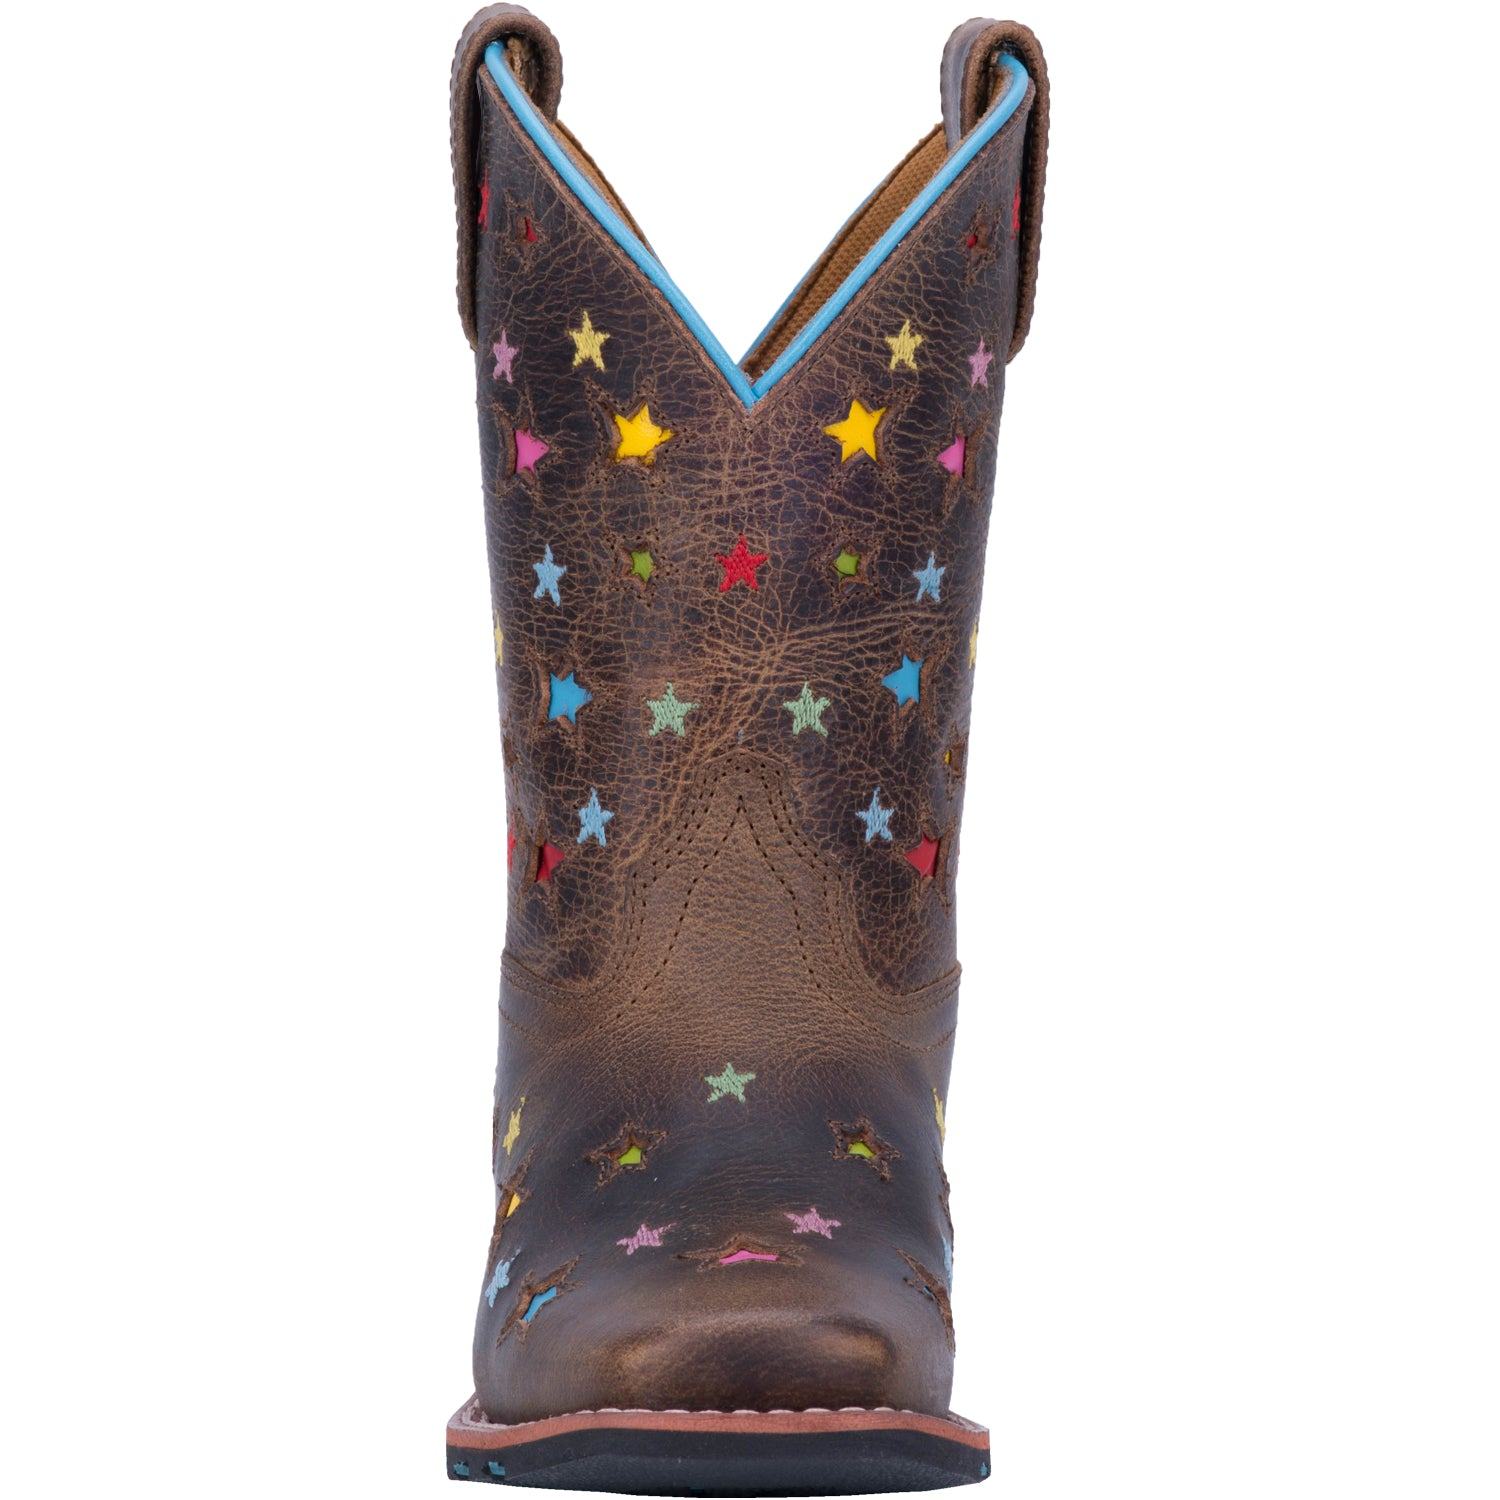 STARLETT LEATHER YOUTH BOOT 4197207900202